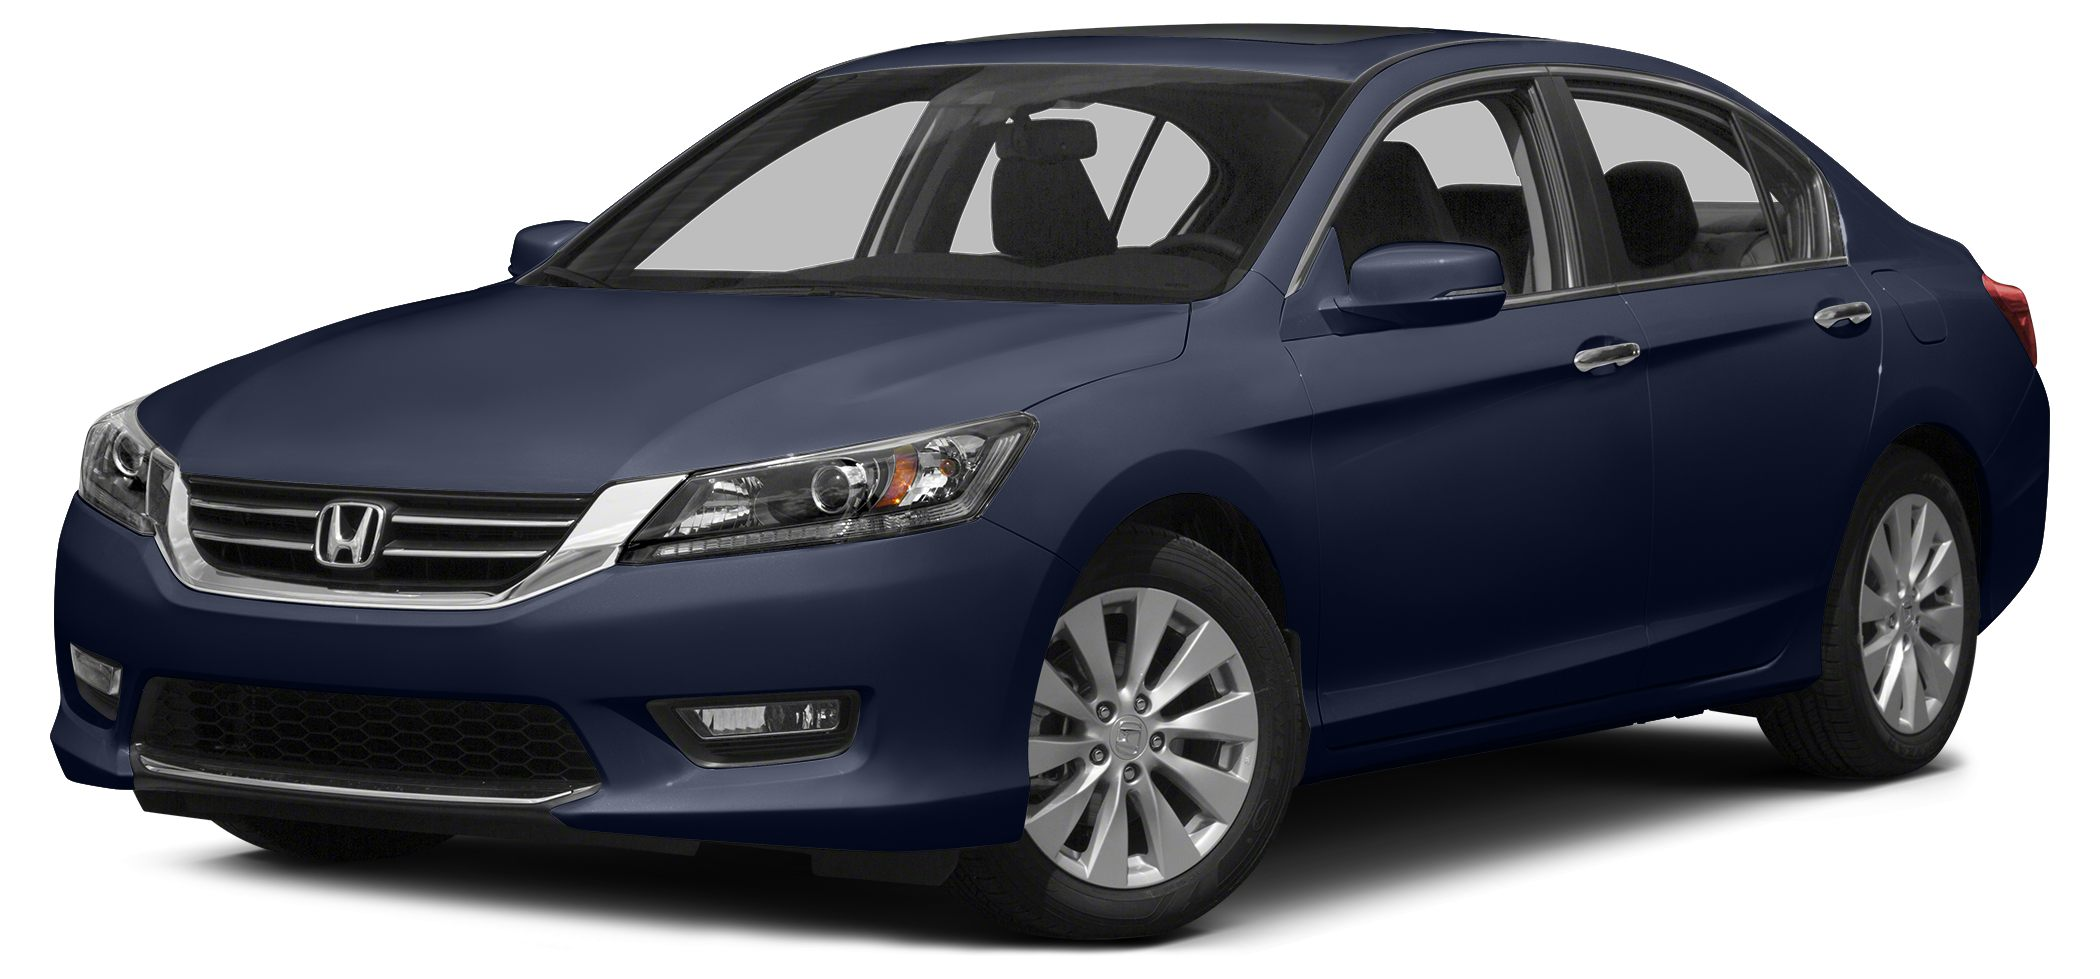 2014 Honda Accord EX-L This outstanding example of a 2014 Honda Accord Sedan EX-L is offered by Fe